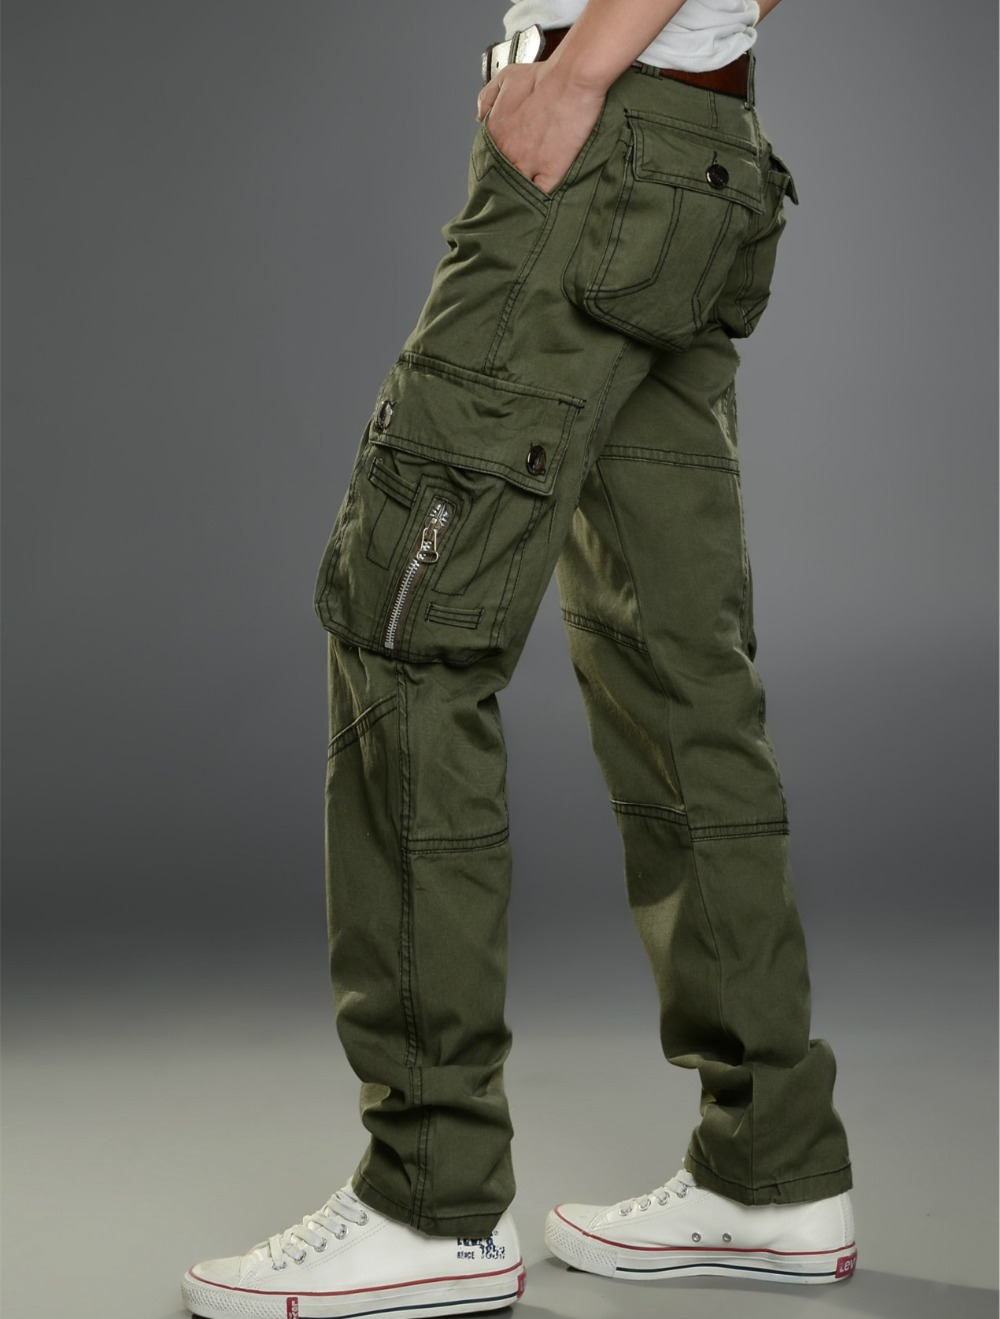 Nylon Cargo Pants Men - Pant Row